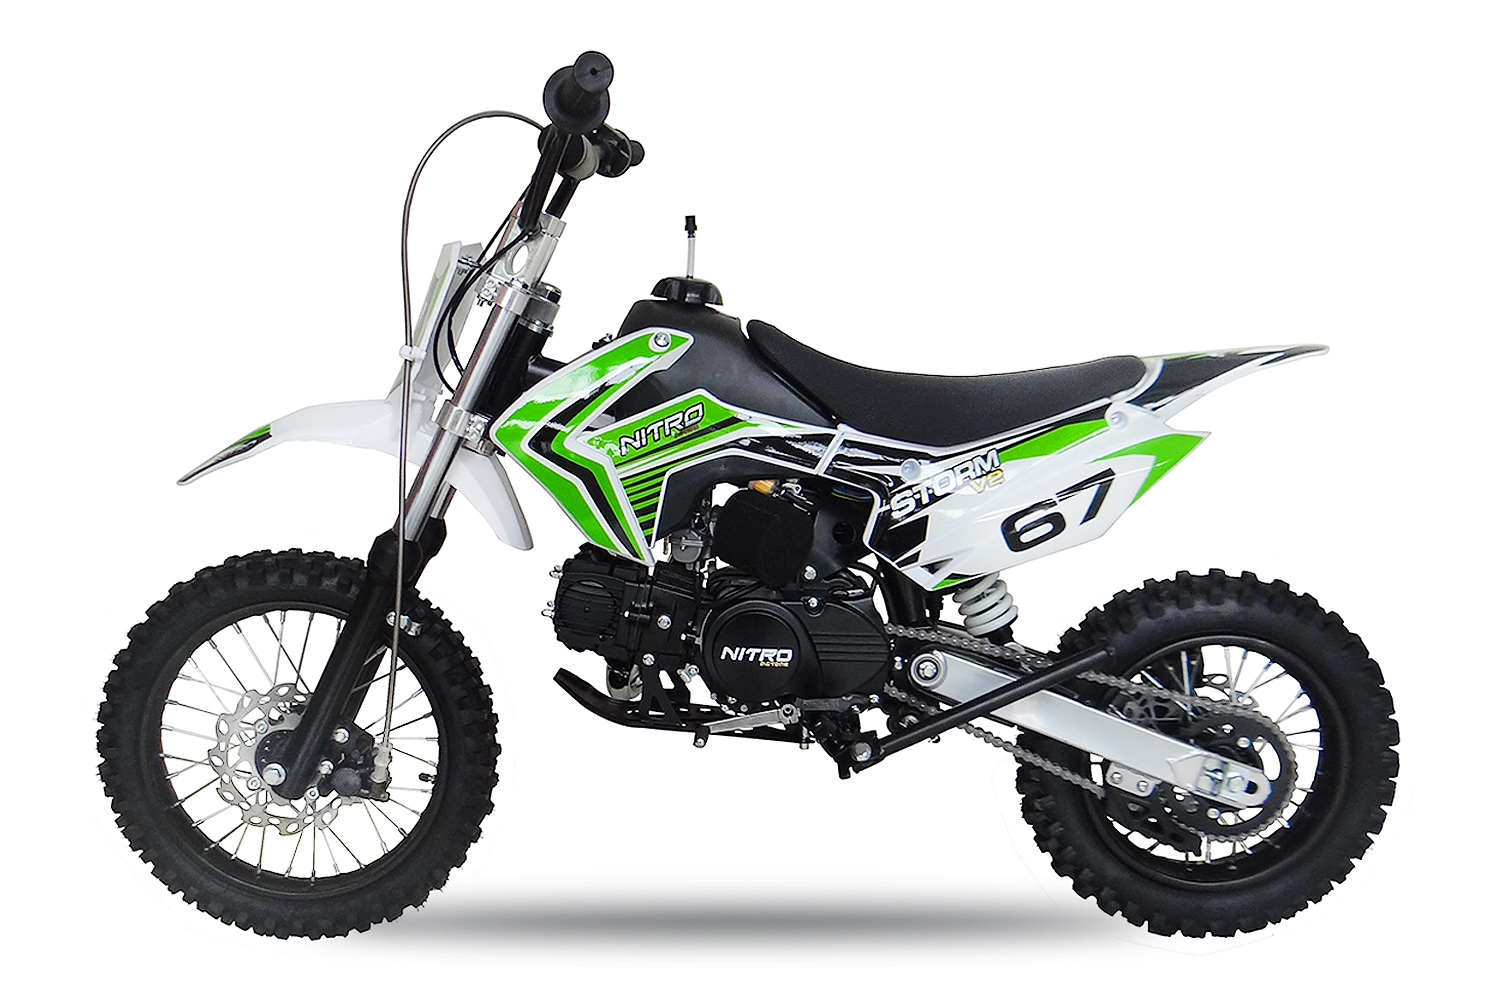 110cc dirtbike storm 14 12 automatic e start with new design. Black Bedroom Furniture Sets. Home Design Ideas